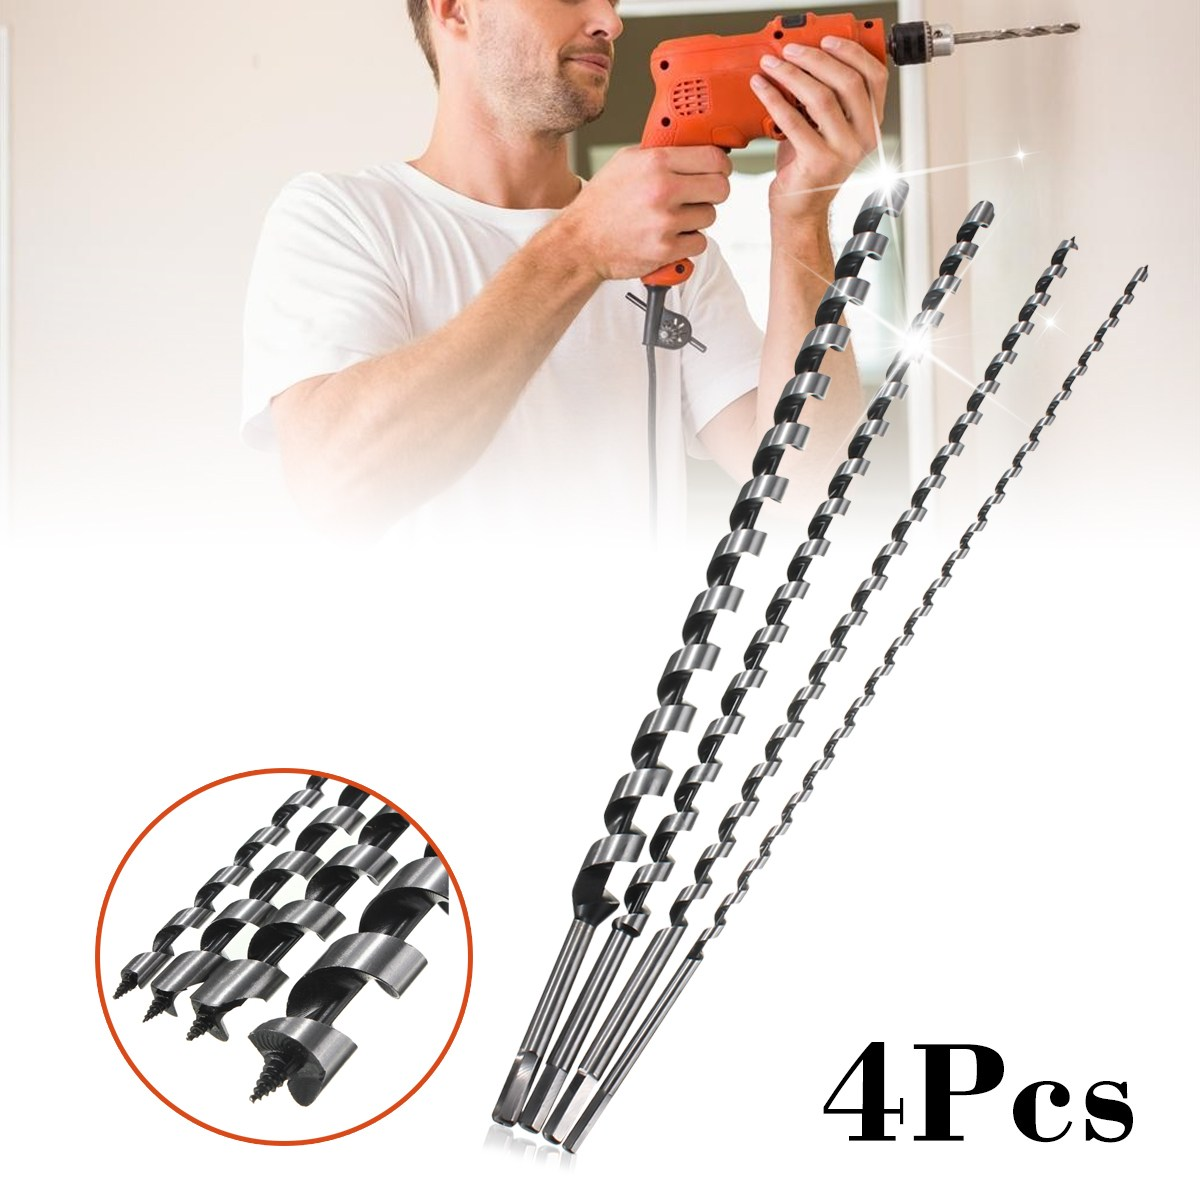 4PC Long Wood Auger Bits 600MM Long Wood Auger Set Drill Bit 8pcs 230mm super long auger drill bits hex shank woodworking auger bits set good quality power tools